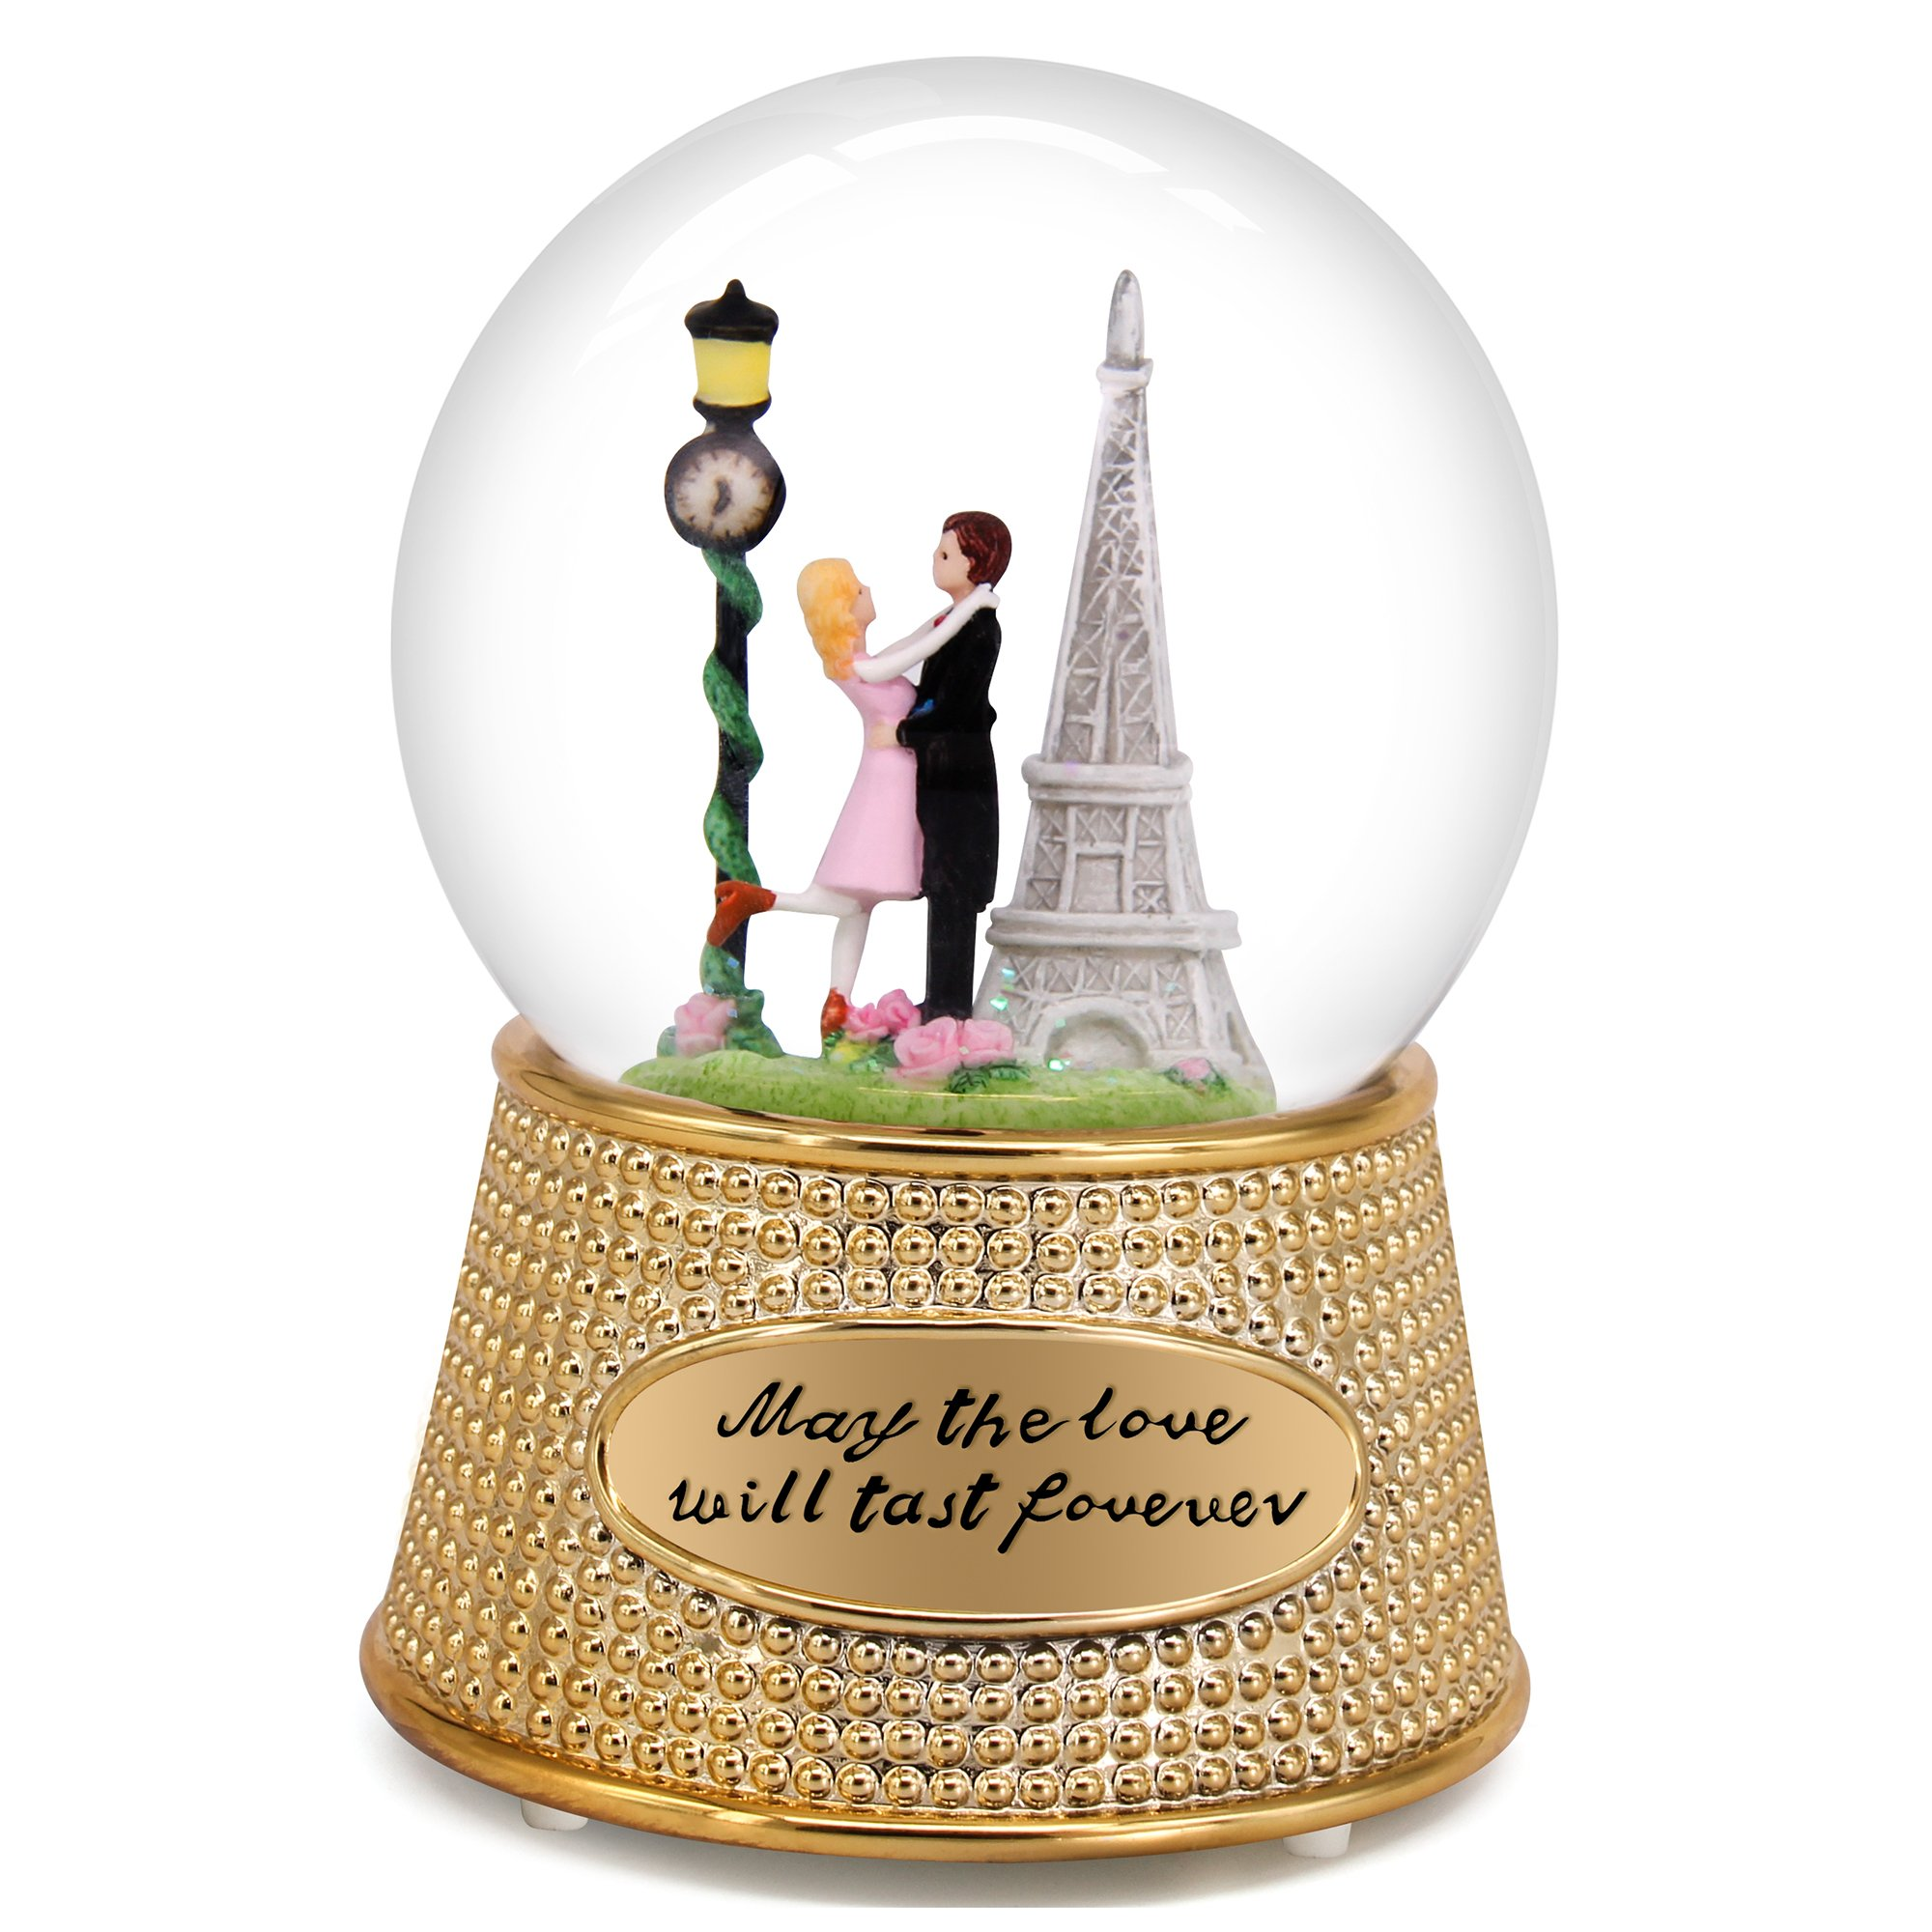 QTMY Musical Snow Globes Ornament Couple Lovers Music Boxes with Led Light Sequins Christmas Gift for Her Girls